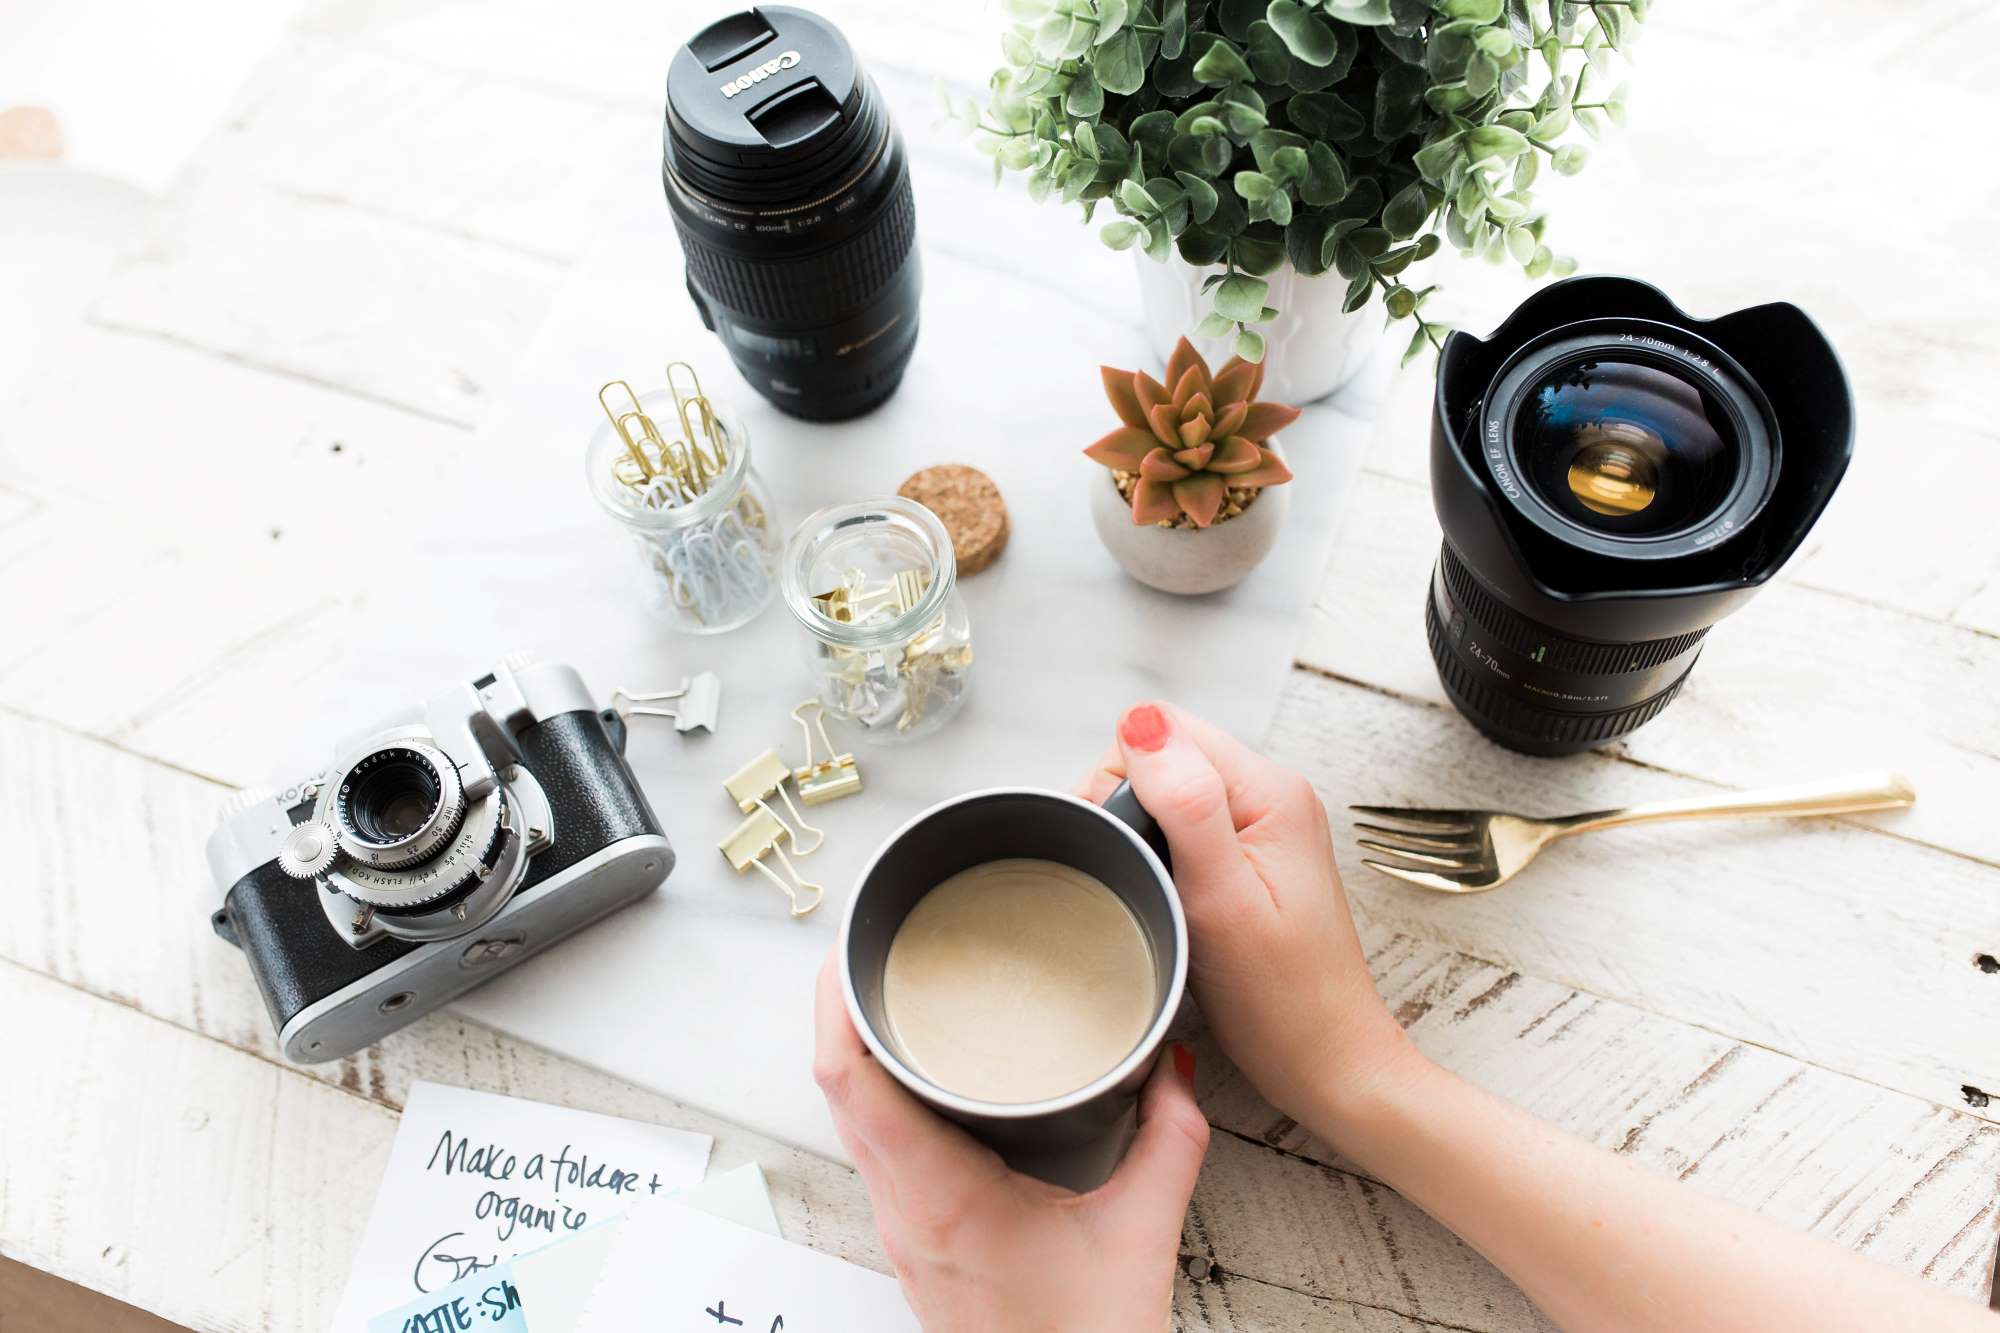 The best way to process your images for your website